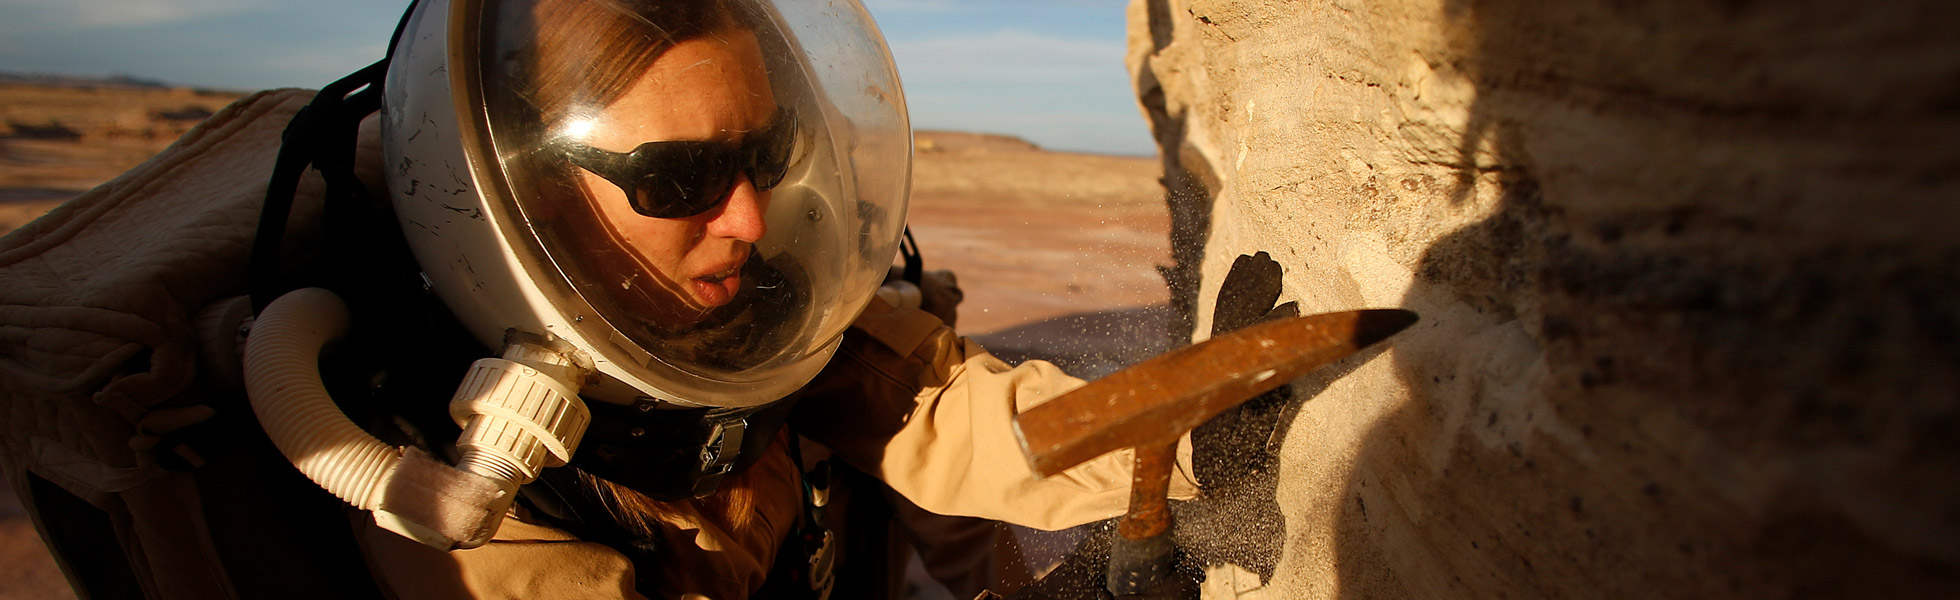 A photo of a woman in a space suit digging into a rock with a small hammer.